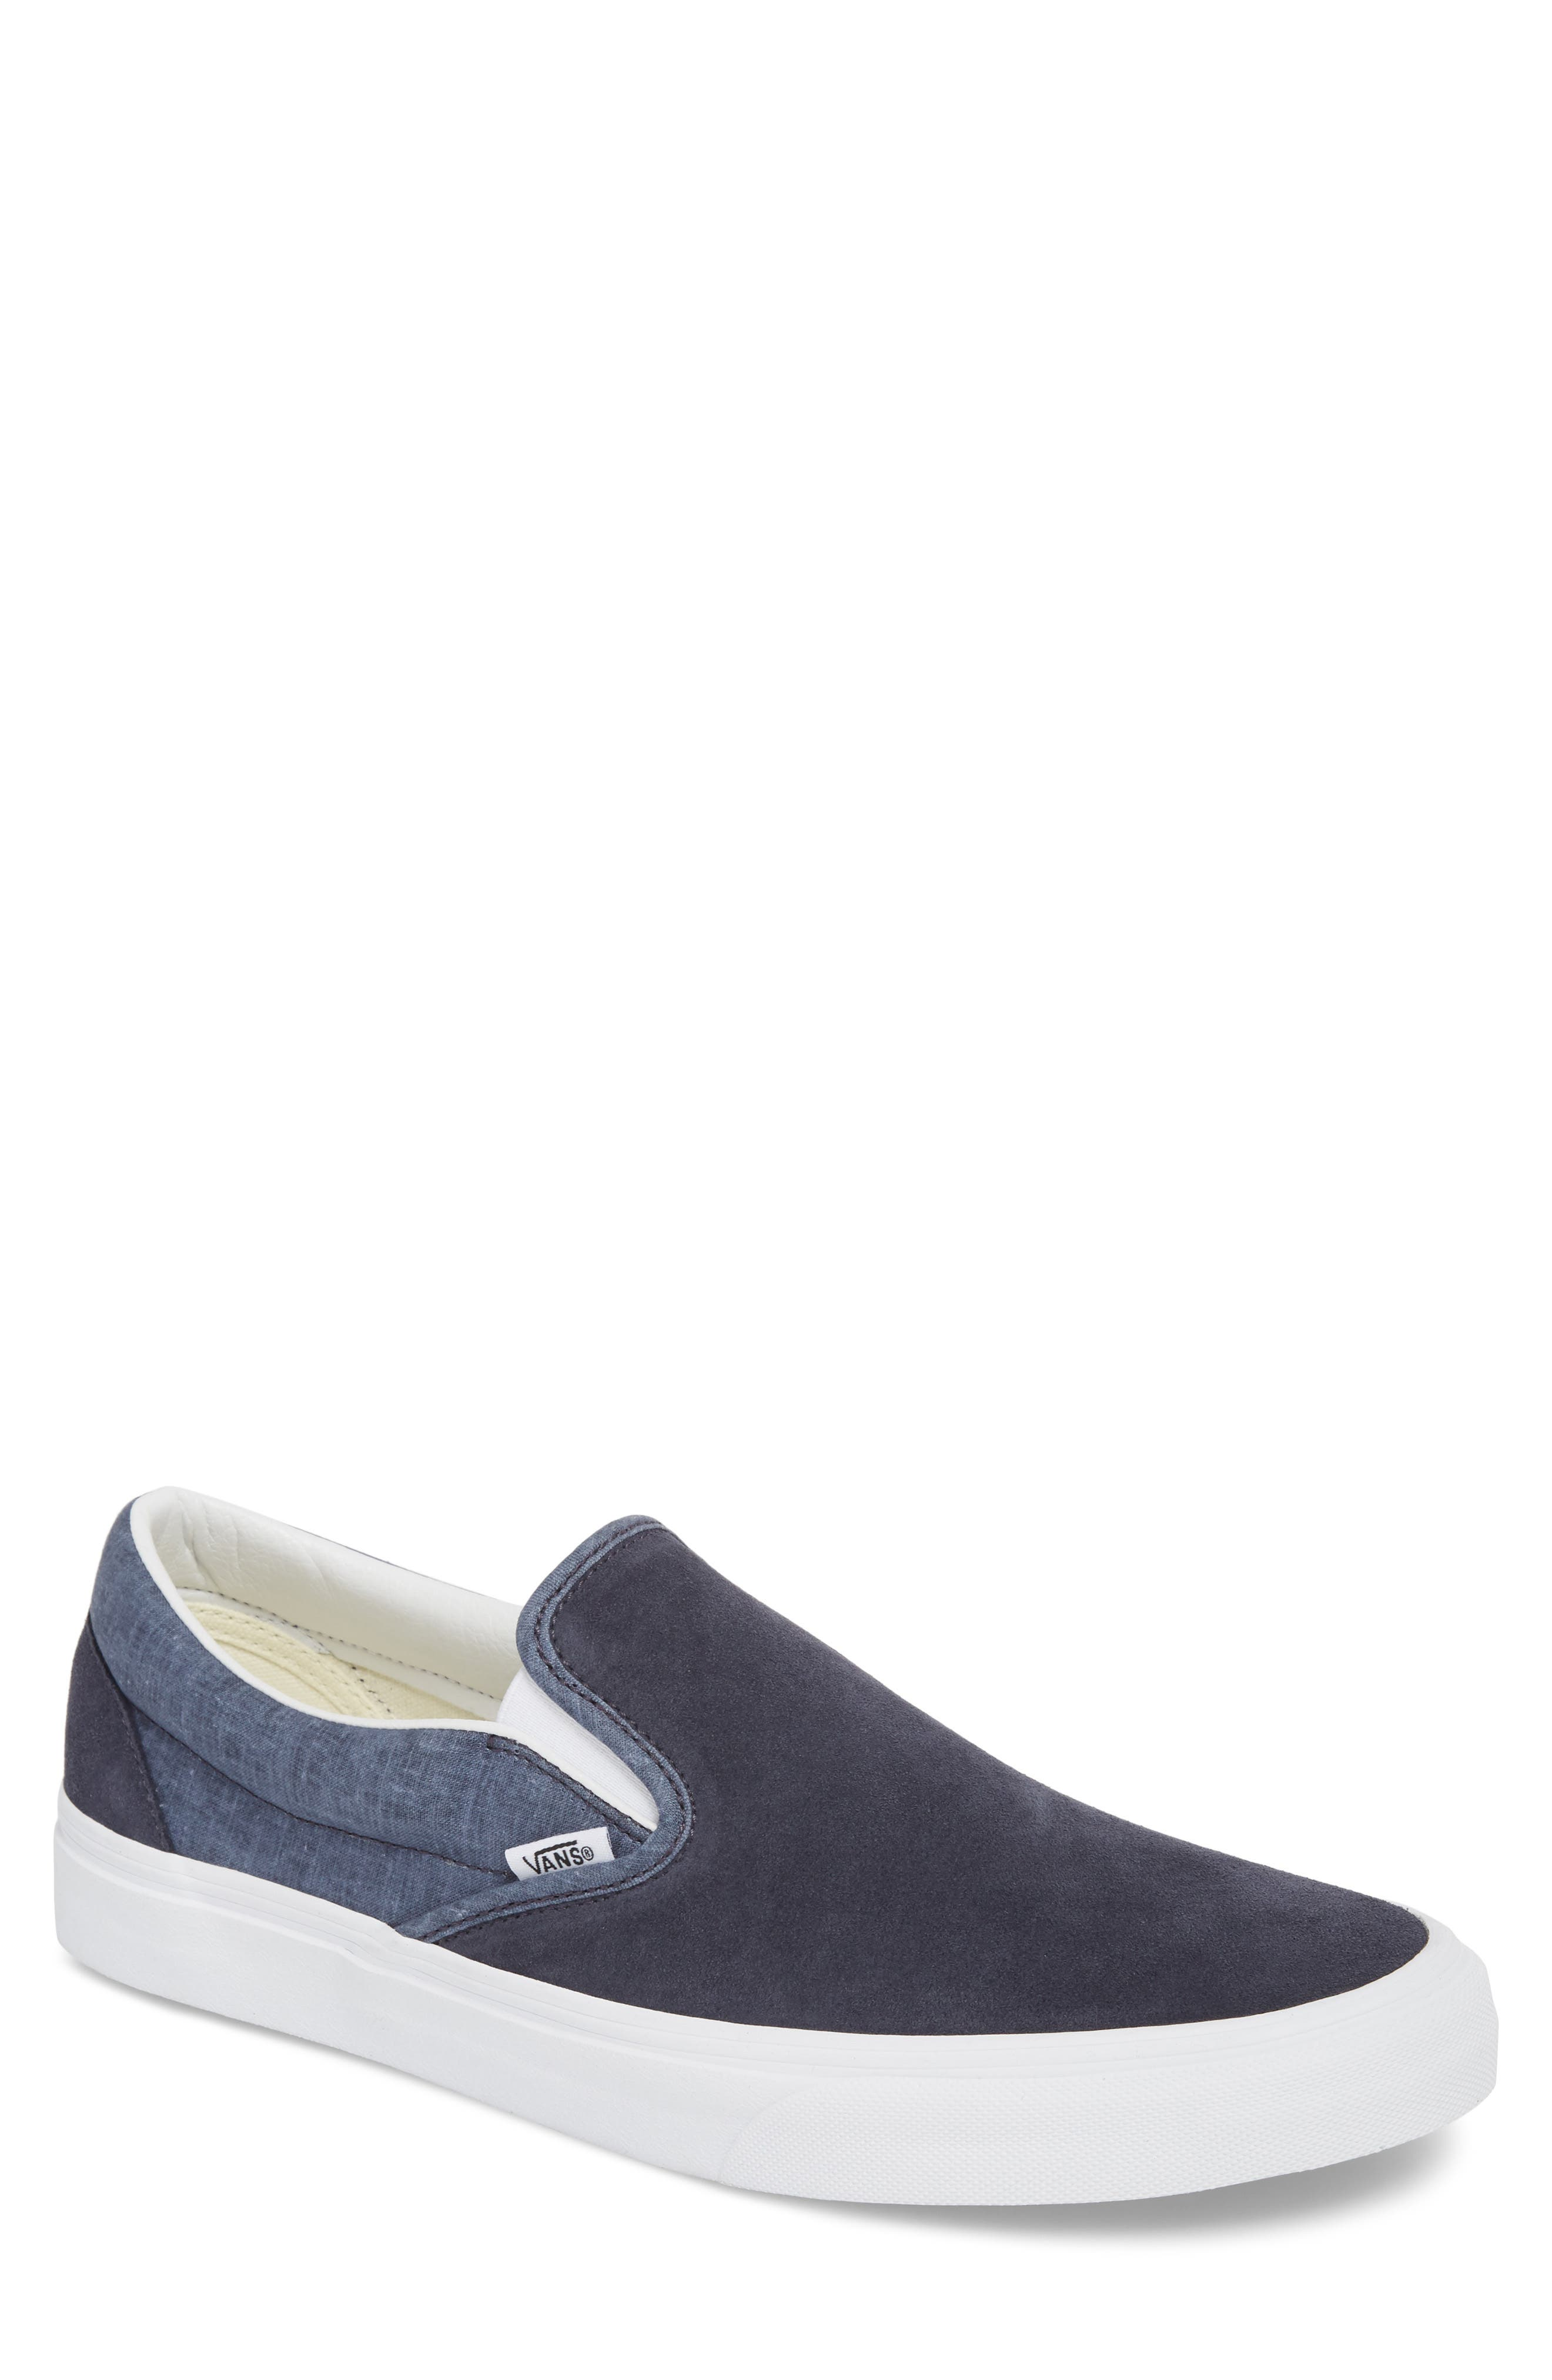 'Classic' Slip-On Sneaker,                             Main thumbnail 1, color,                             Parisian Night Suede